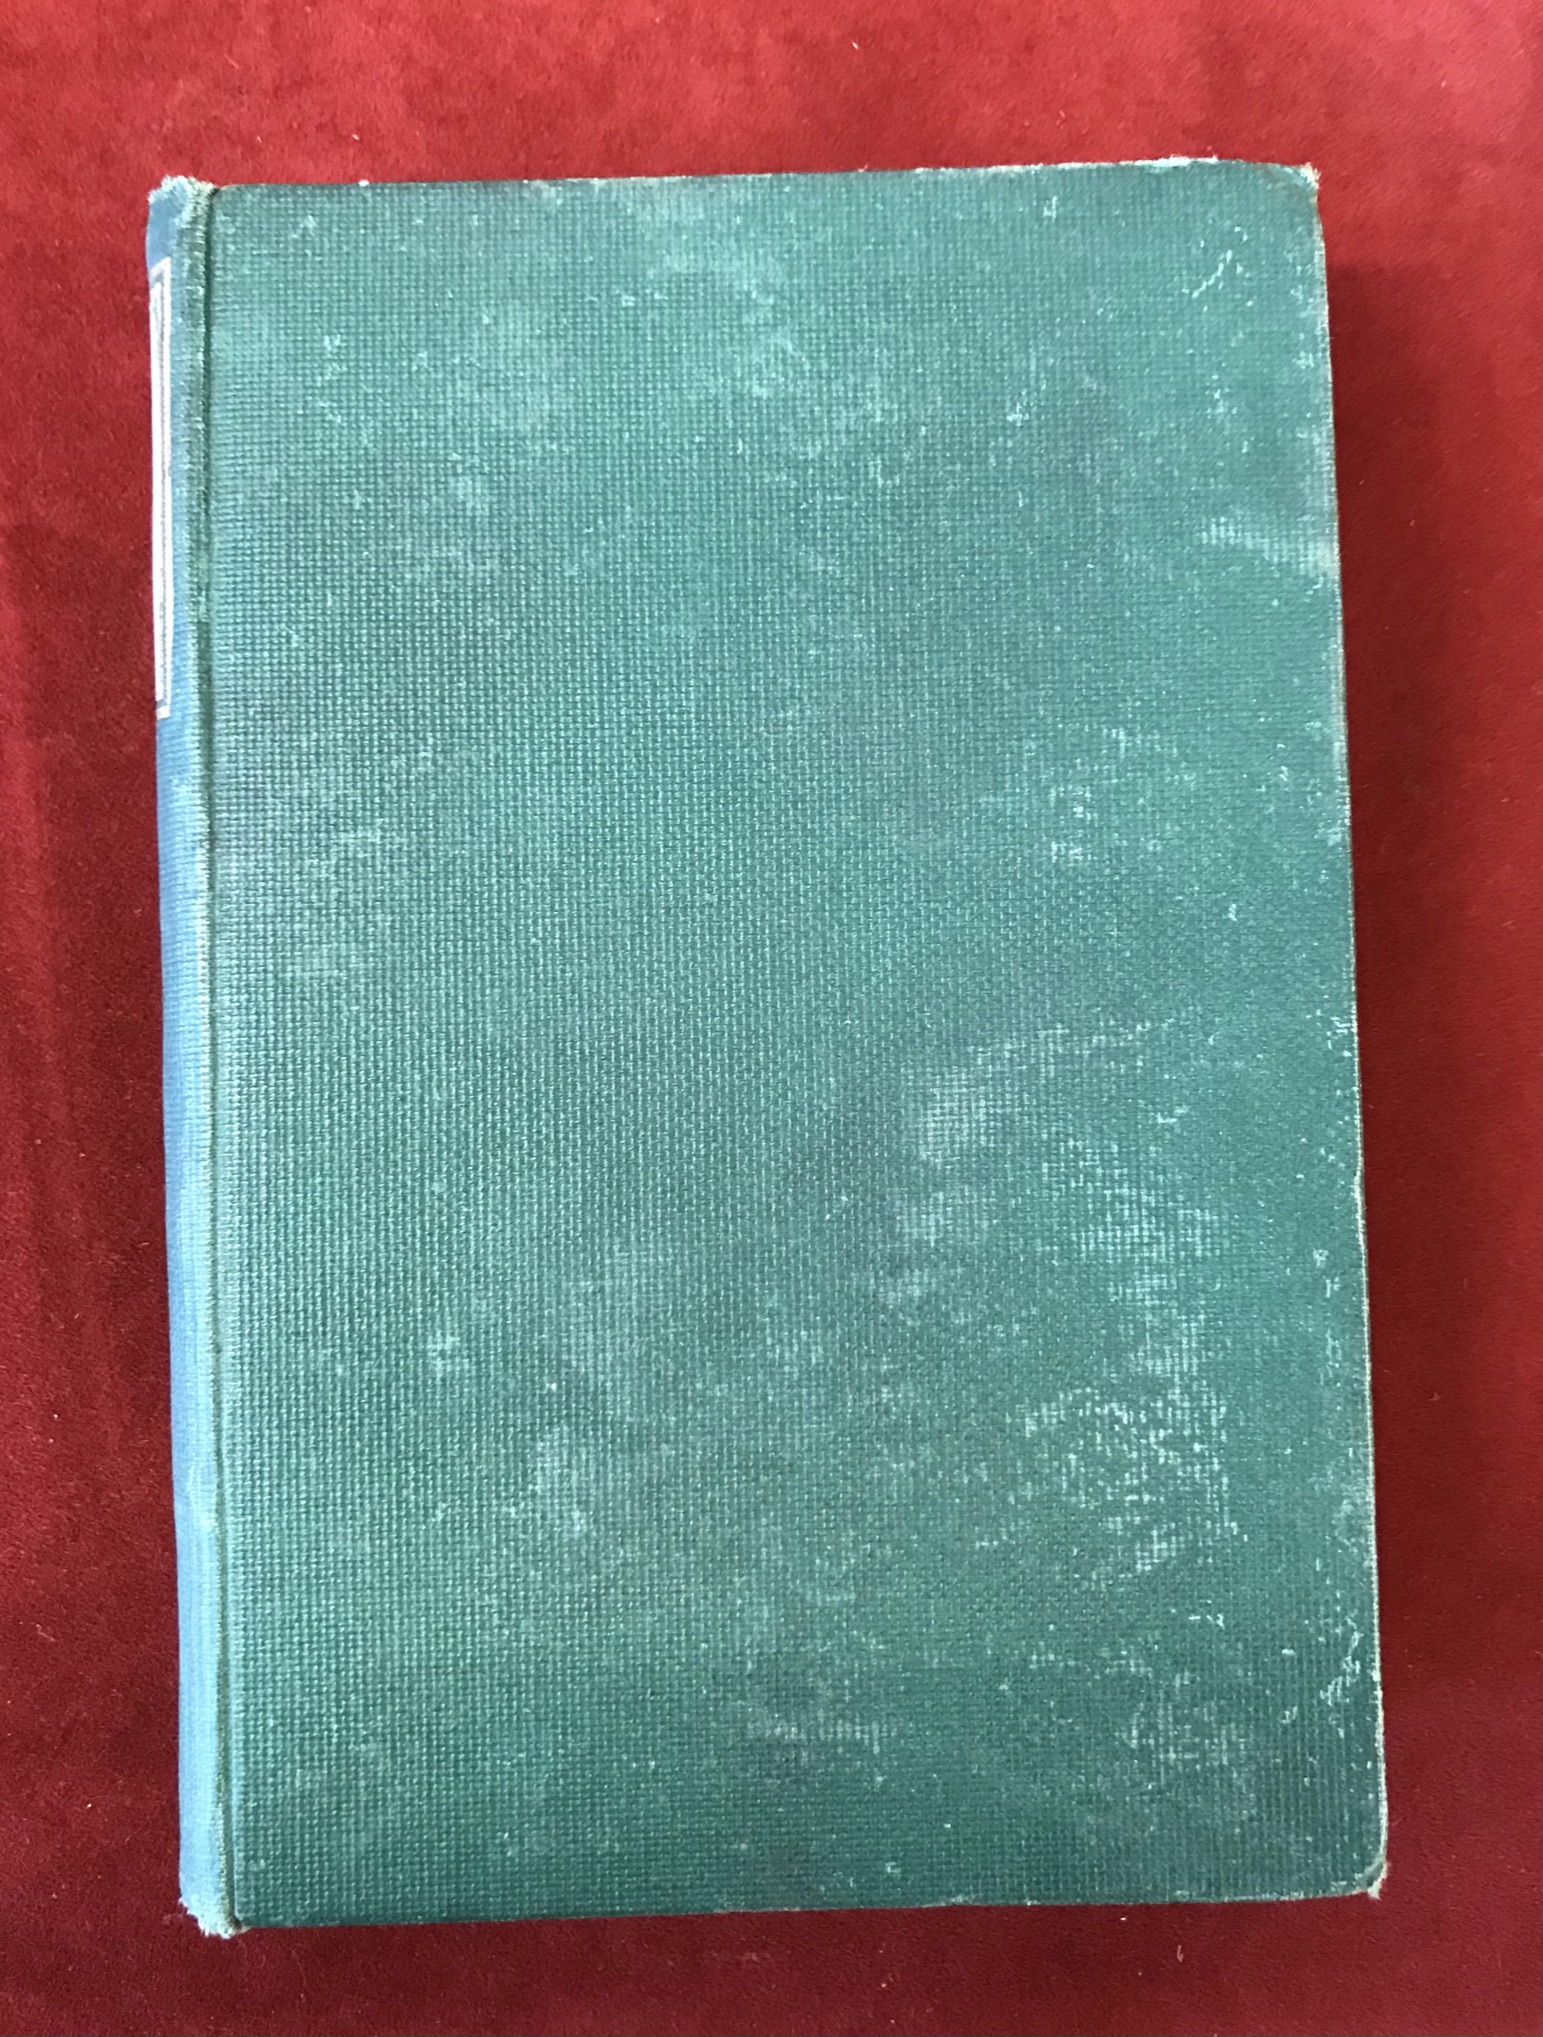 The History of Mr. PollyFirst edition, no D/W, flaked spine, 1910